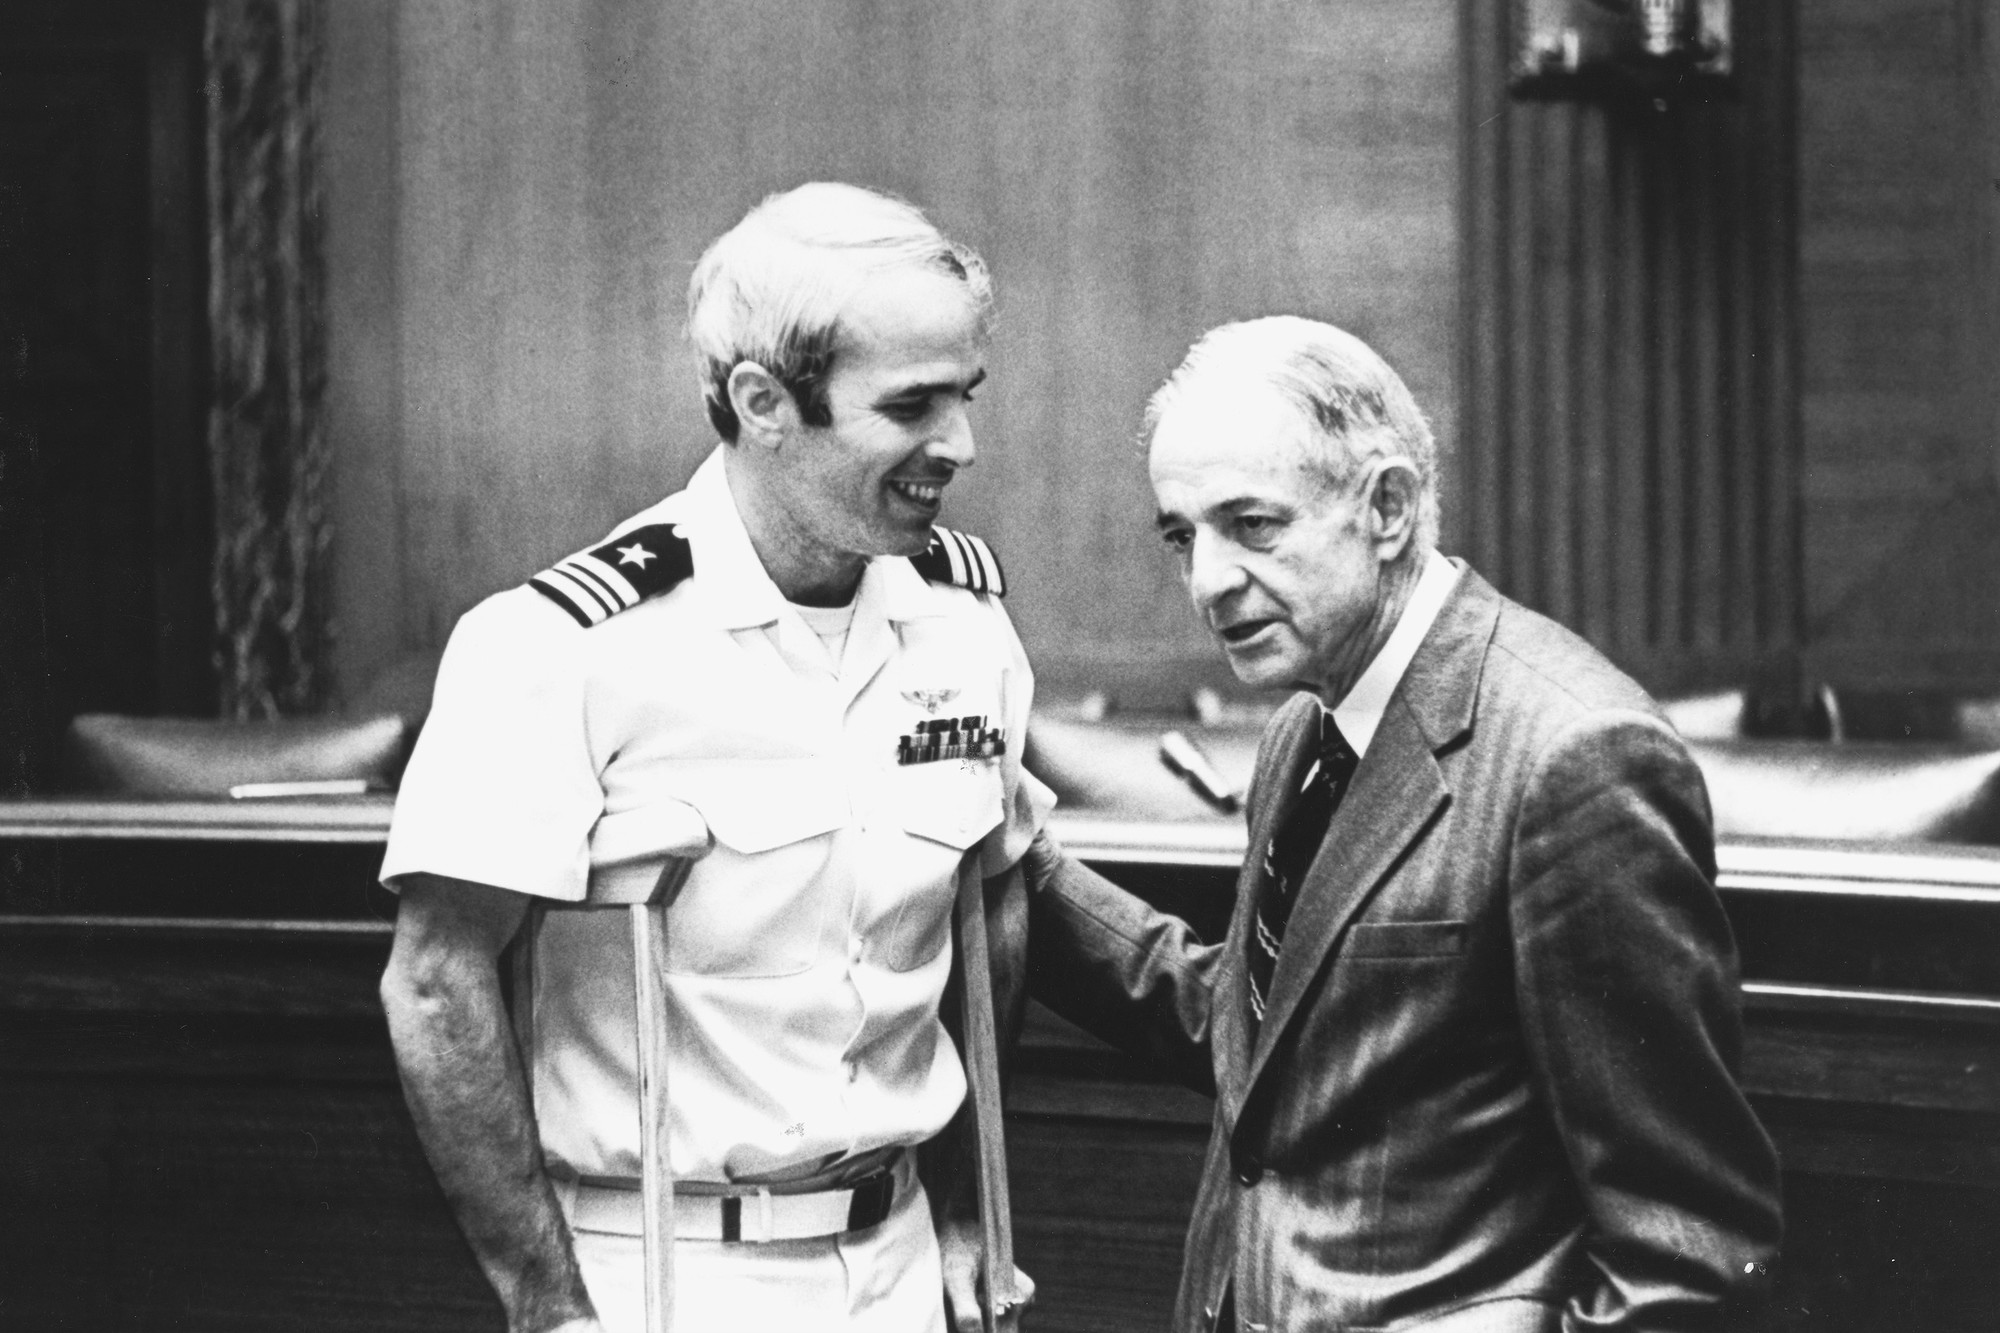 John McCain, left, is shown with his father, Admiral John S. McCain Jr., after his release from a North Vietnamese prison camp in 1973.